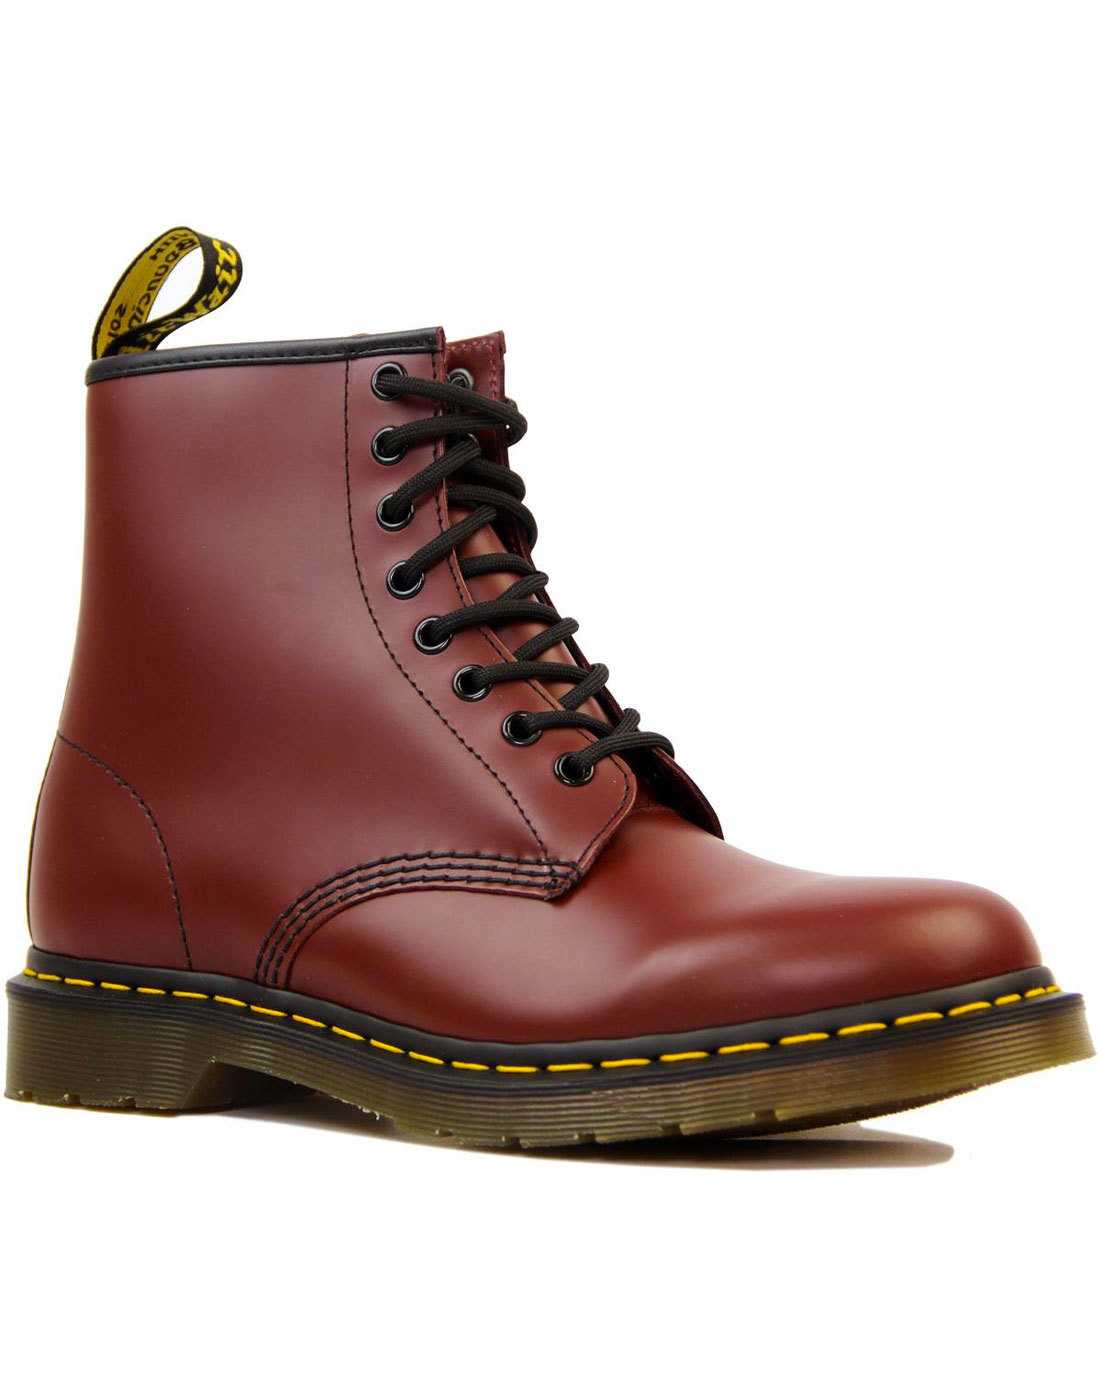 1460 DR MARTENS Womens Mod Cherry Leather Boots